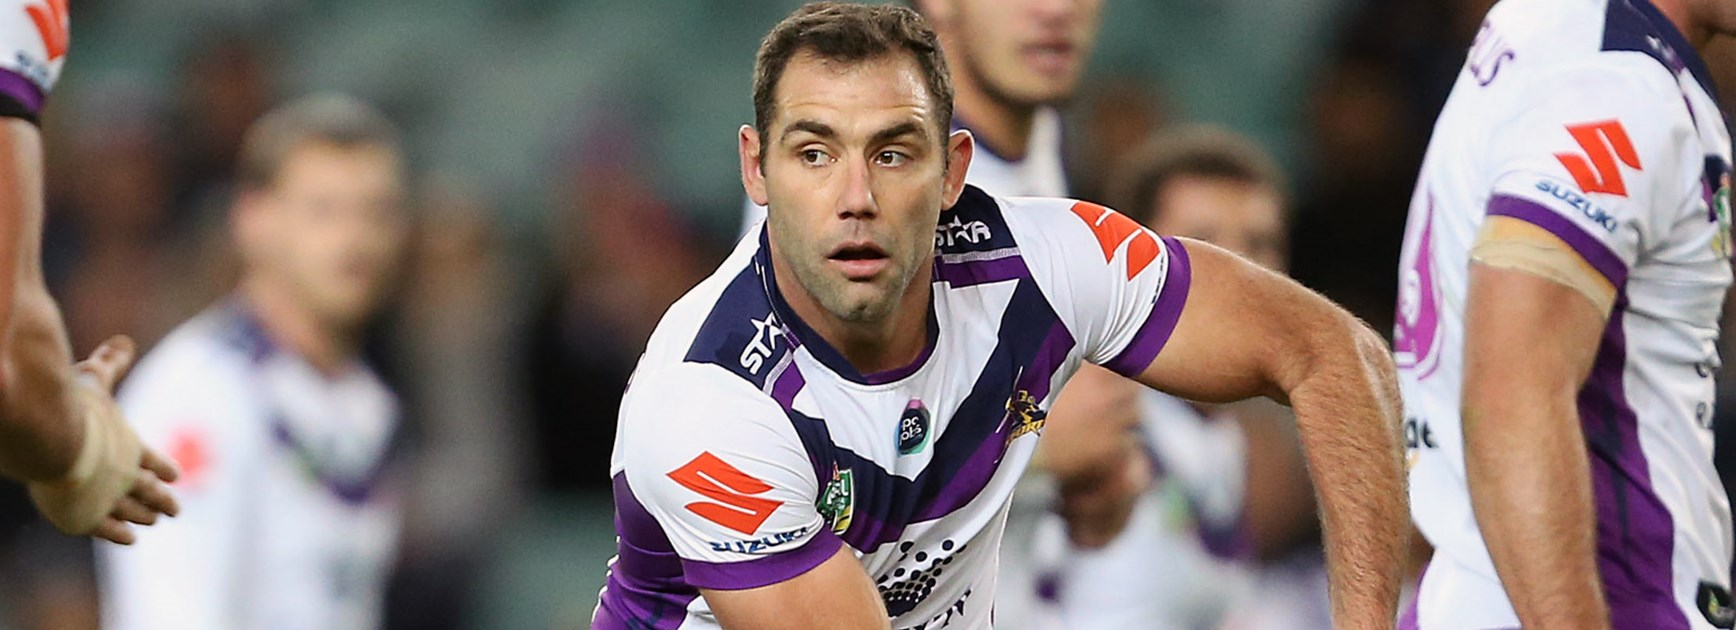 Cameron Smith against the Roosters in Round 14.